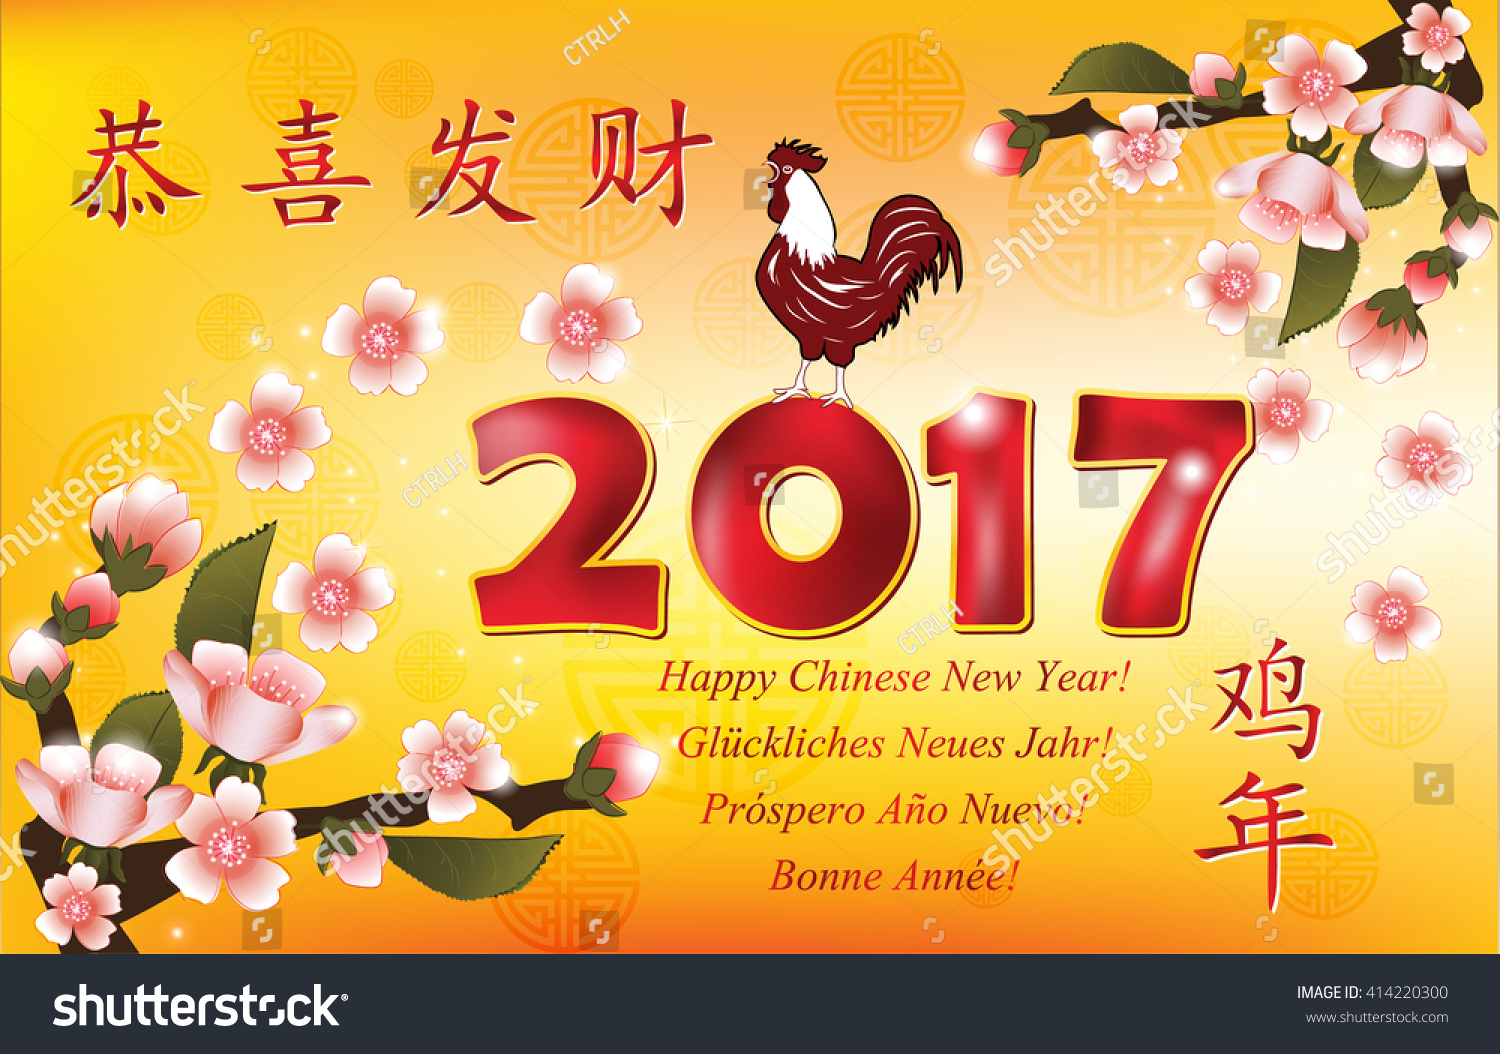 2017 chinese new year greeting card stock vector royalty free 2017 chinese new year greeting card in many languages text translation happy new year m4hsunfo